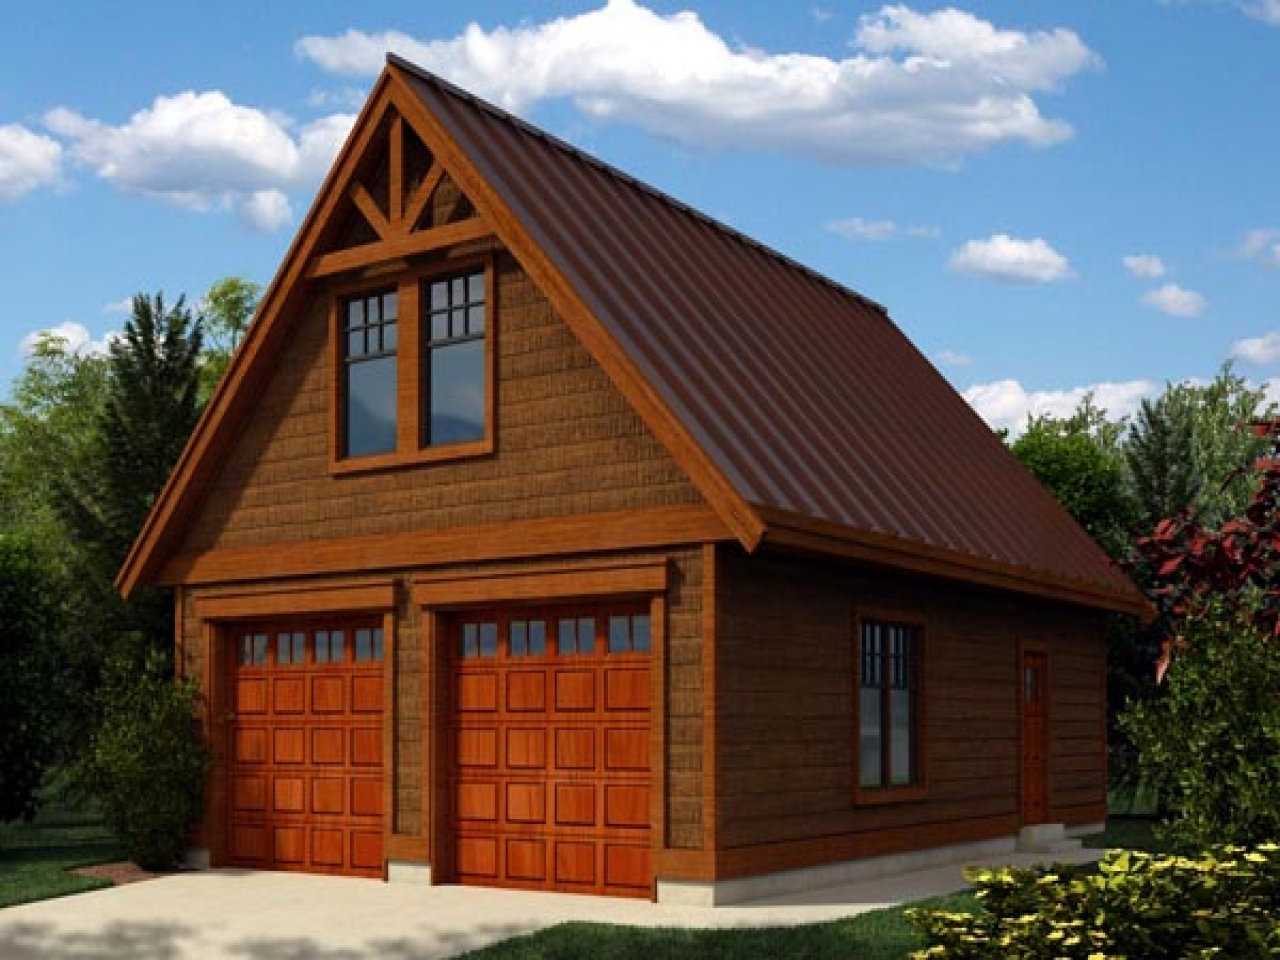 Garage plans with loft contemporary garage plans with loft for Log cabin style garages